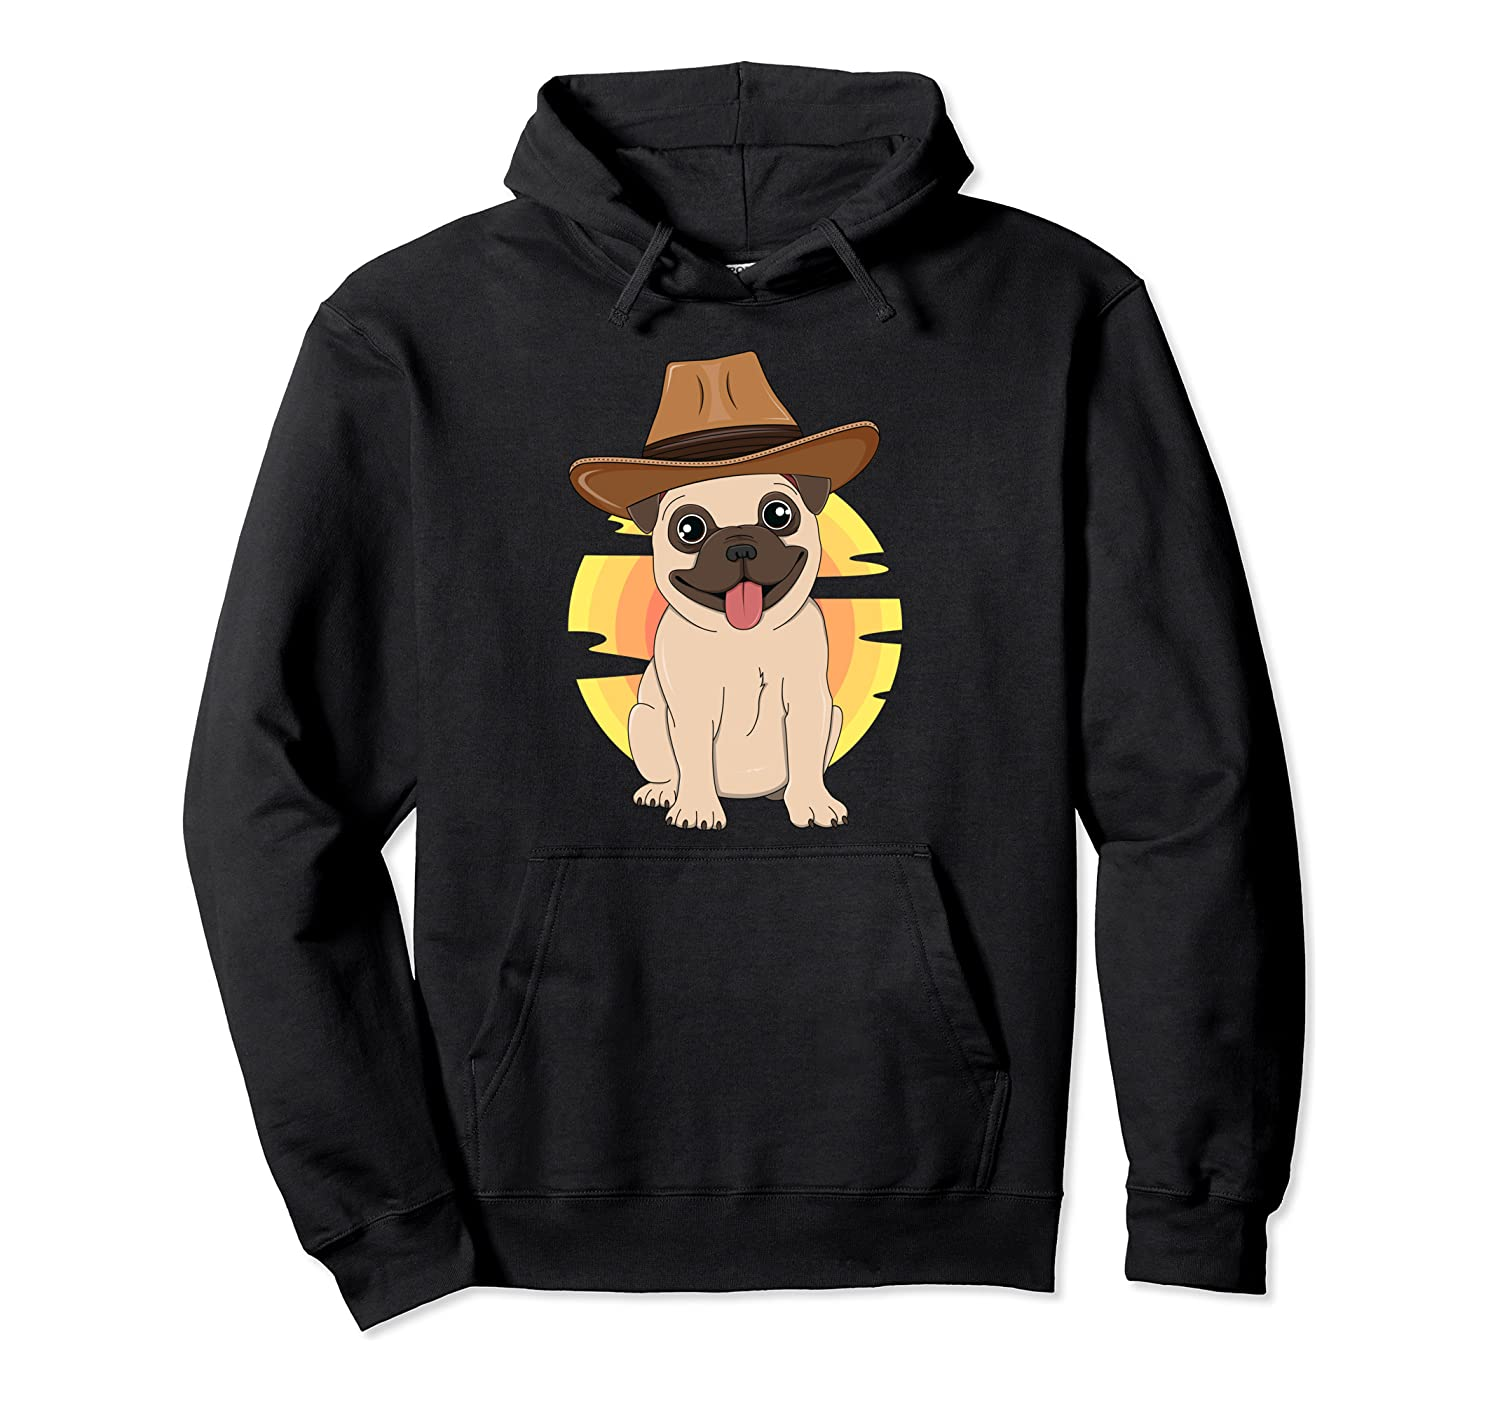 Western Pug Dog Texas Rodeo South Kids Country Boys Girls Pullover Hoodie